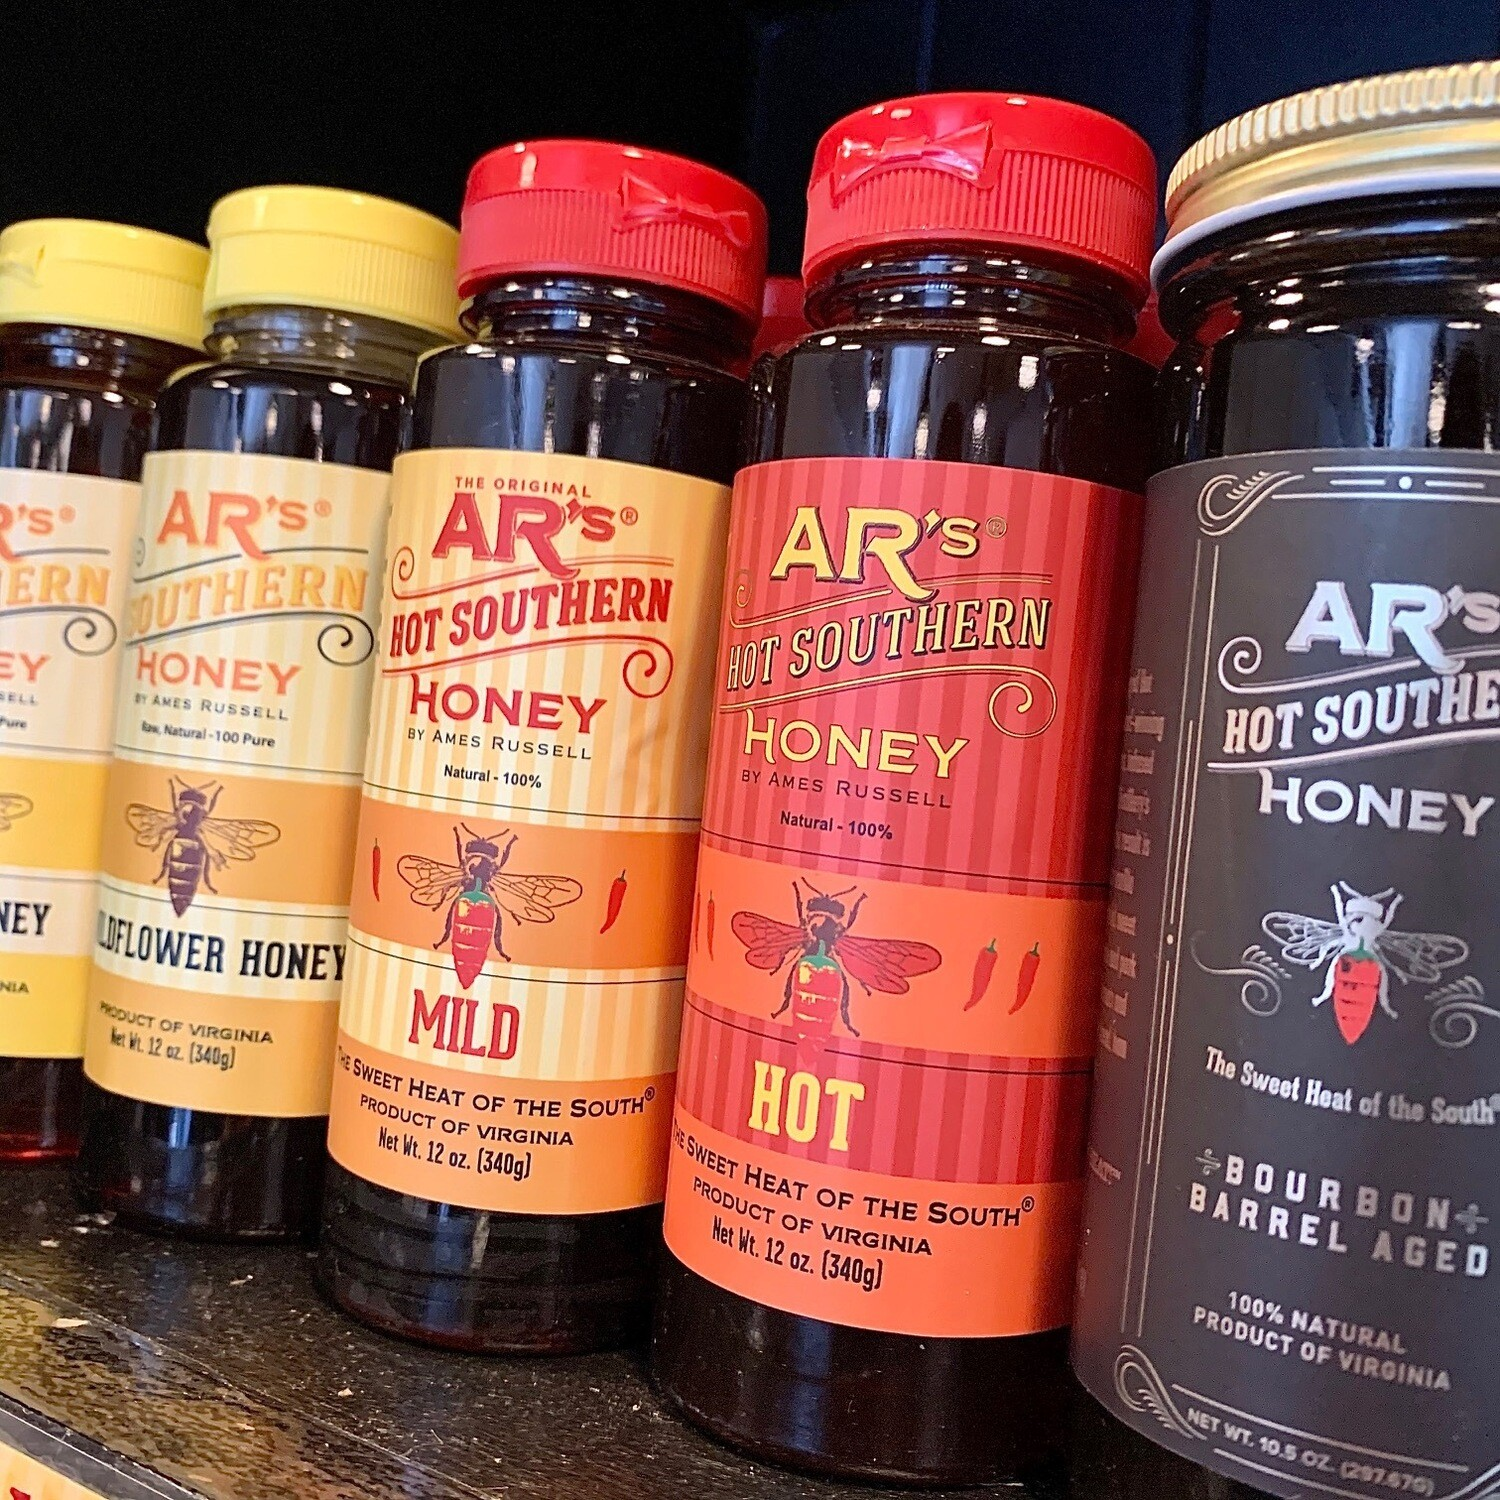 AR's Hot Southern Honey